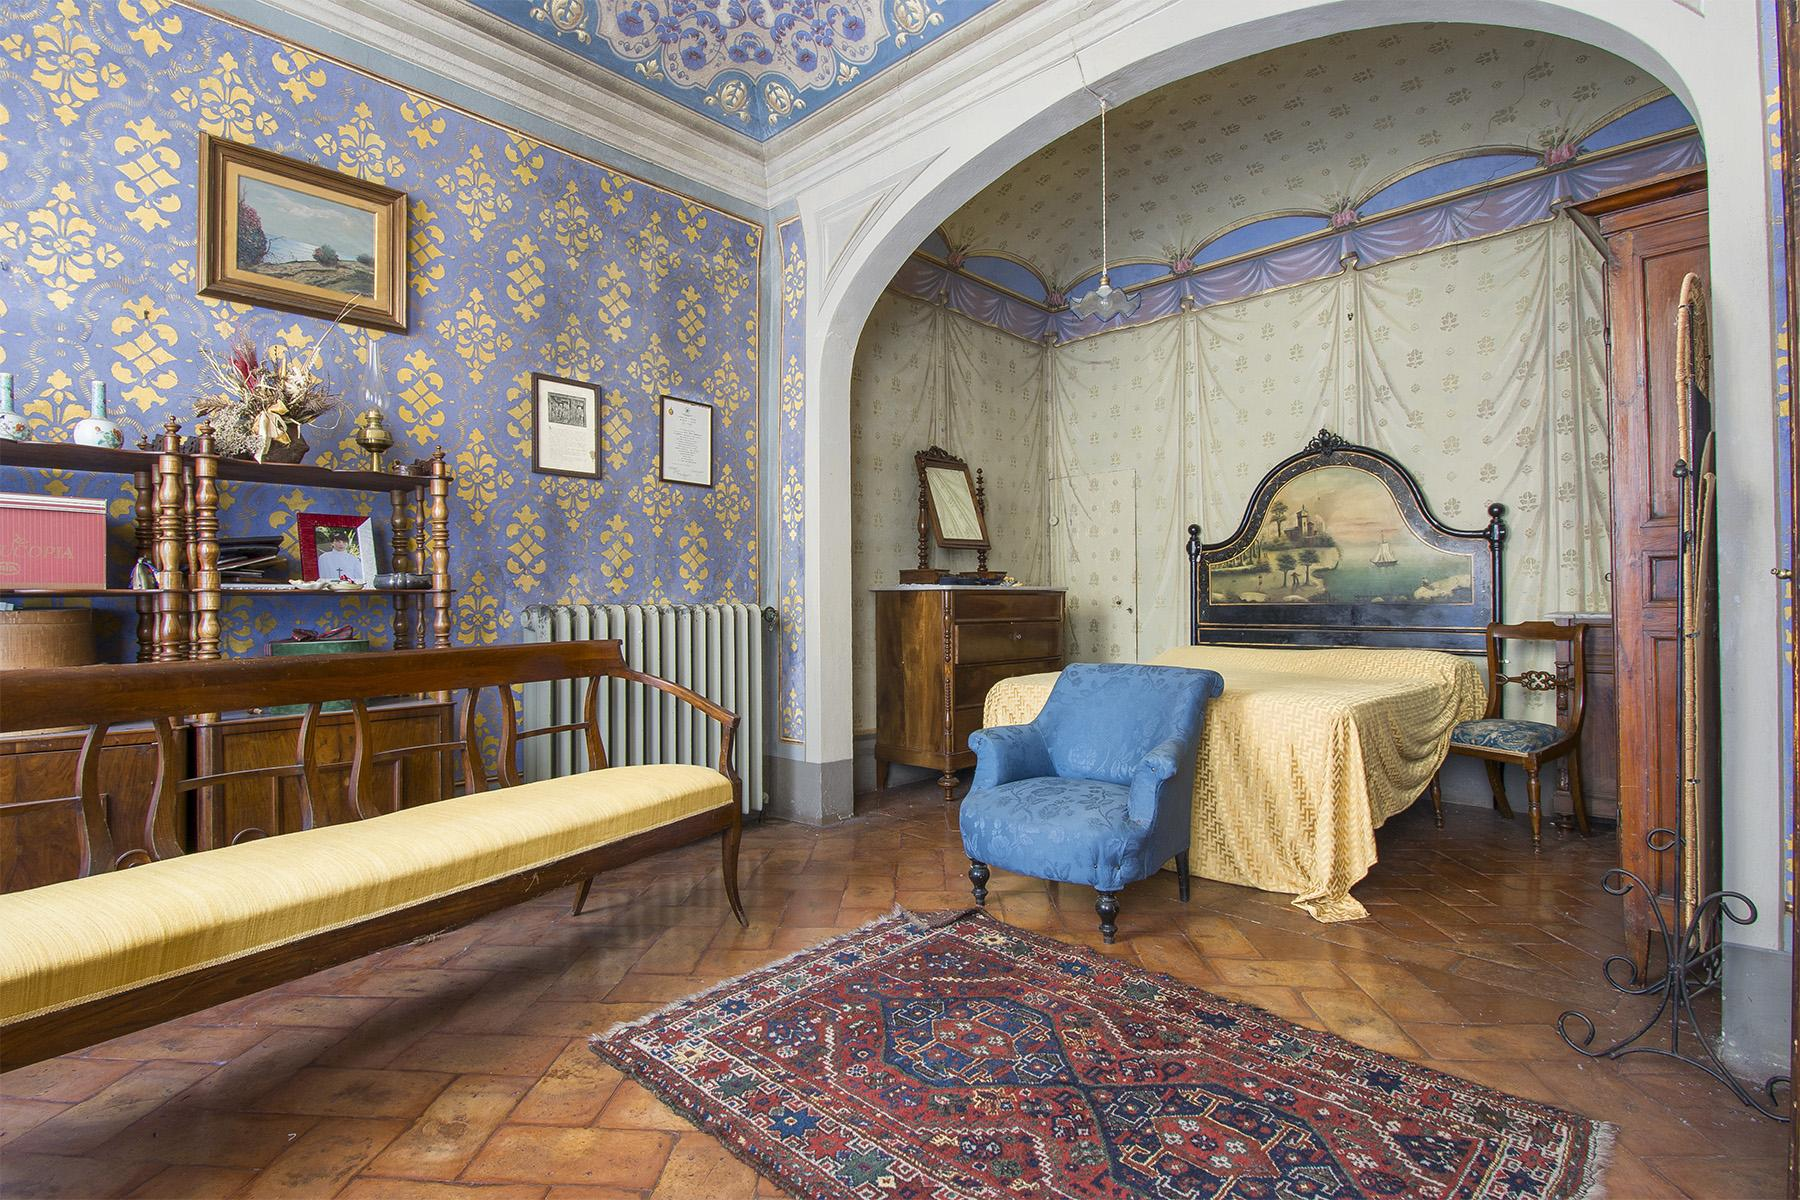 17th-century noble palace in the heart of Volterra - 14